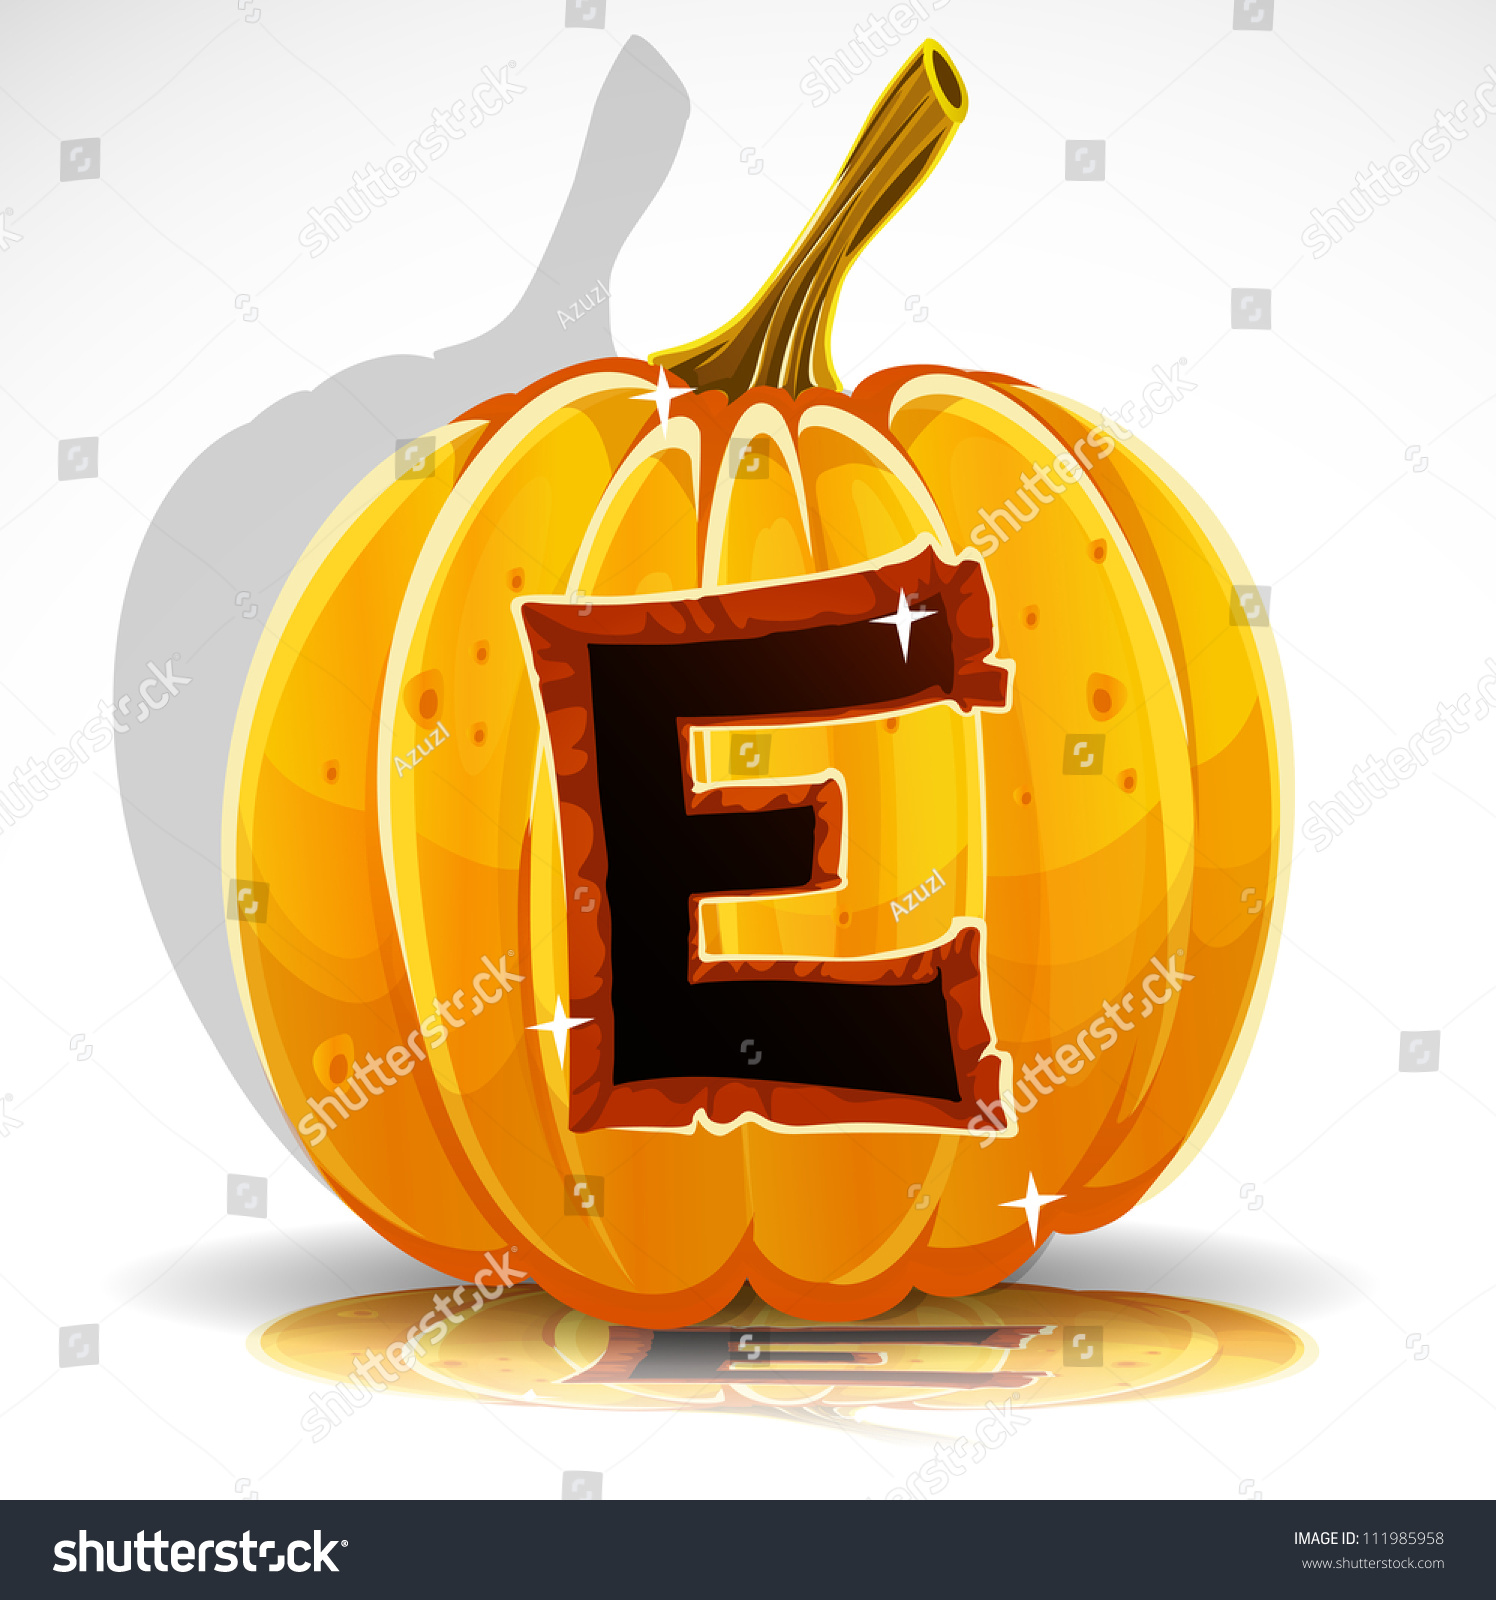 Happy Halloween Font Cut Out Pumpkin Letter E Stock Vector Illustration Shutterstock